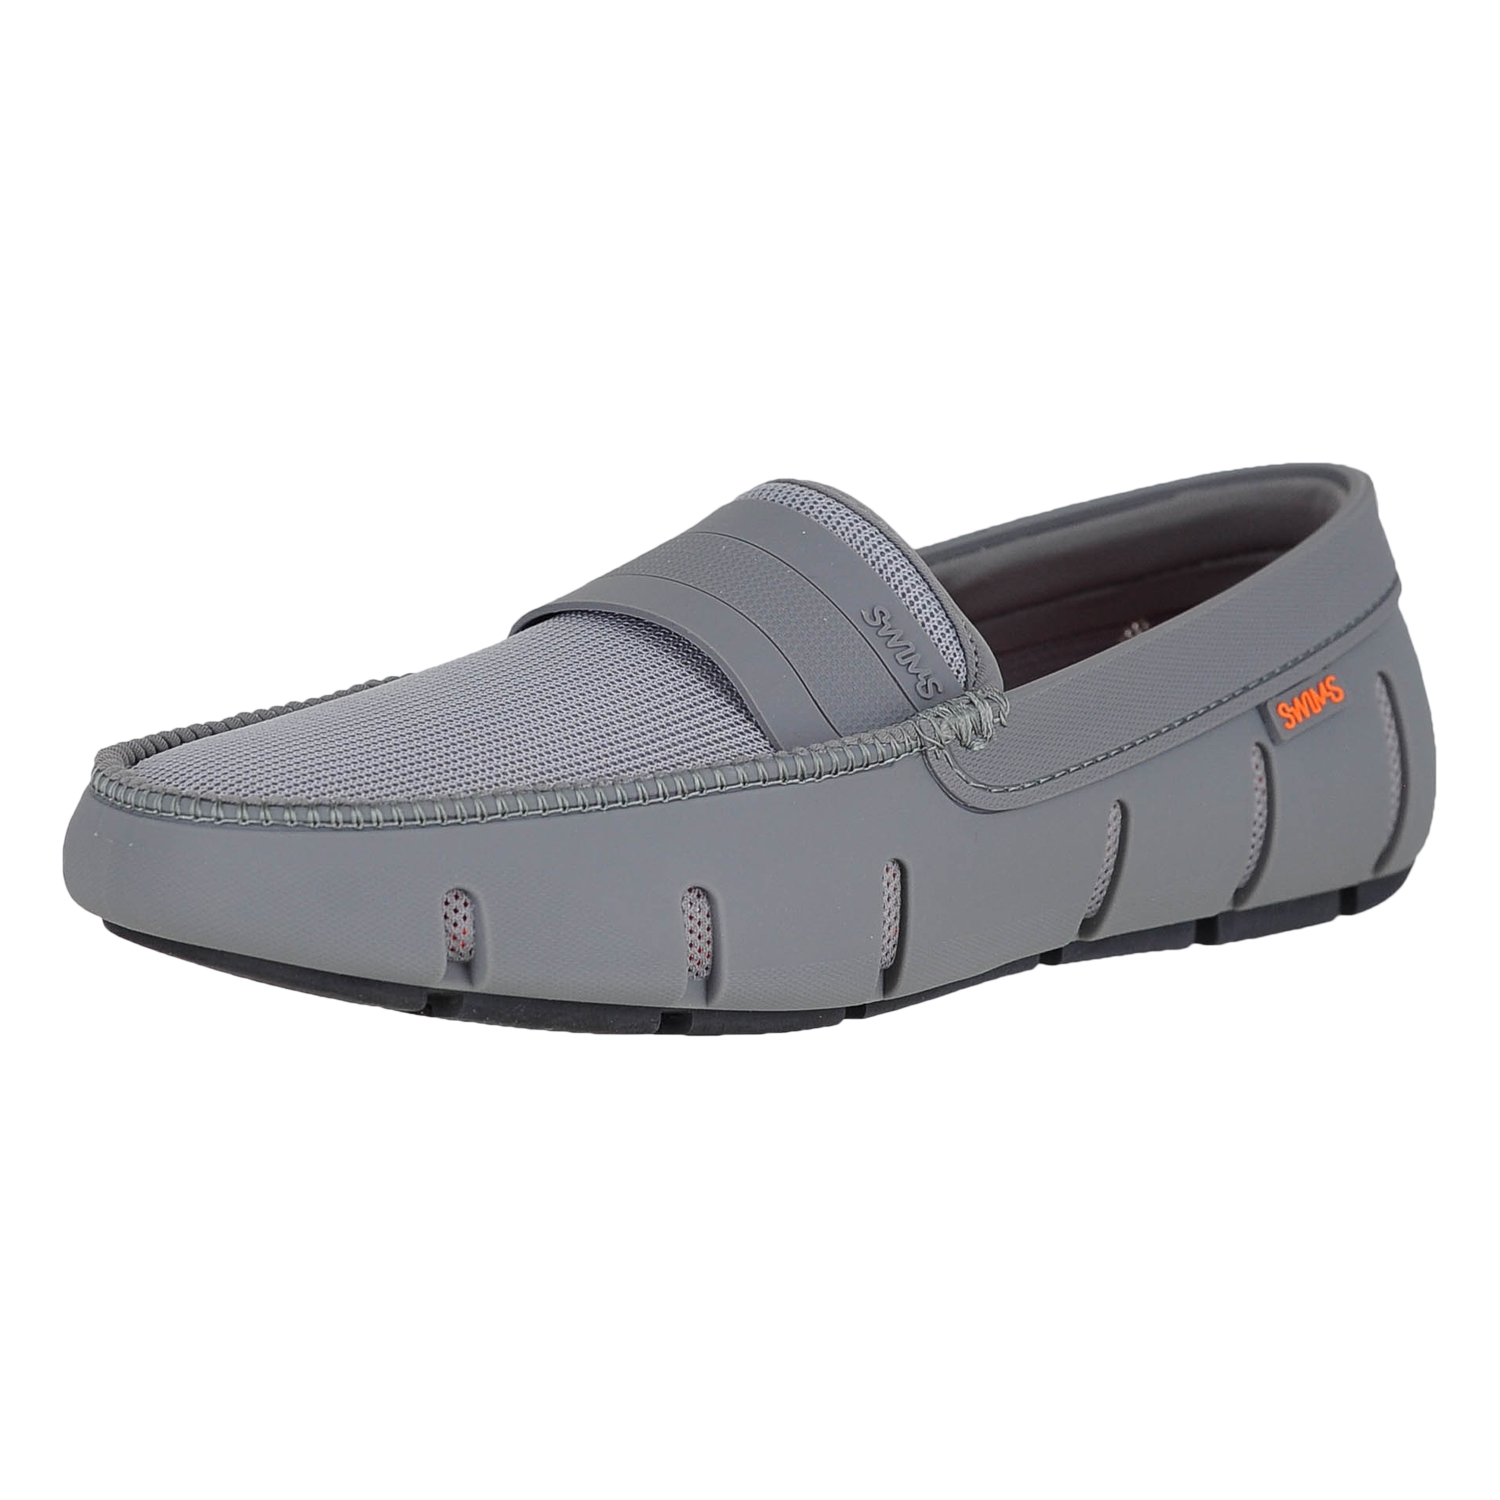 8dd53cfdb86 Details about Swims Stride Single Band Keeper Gray Black Mens Loafers Size  8M